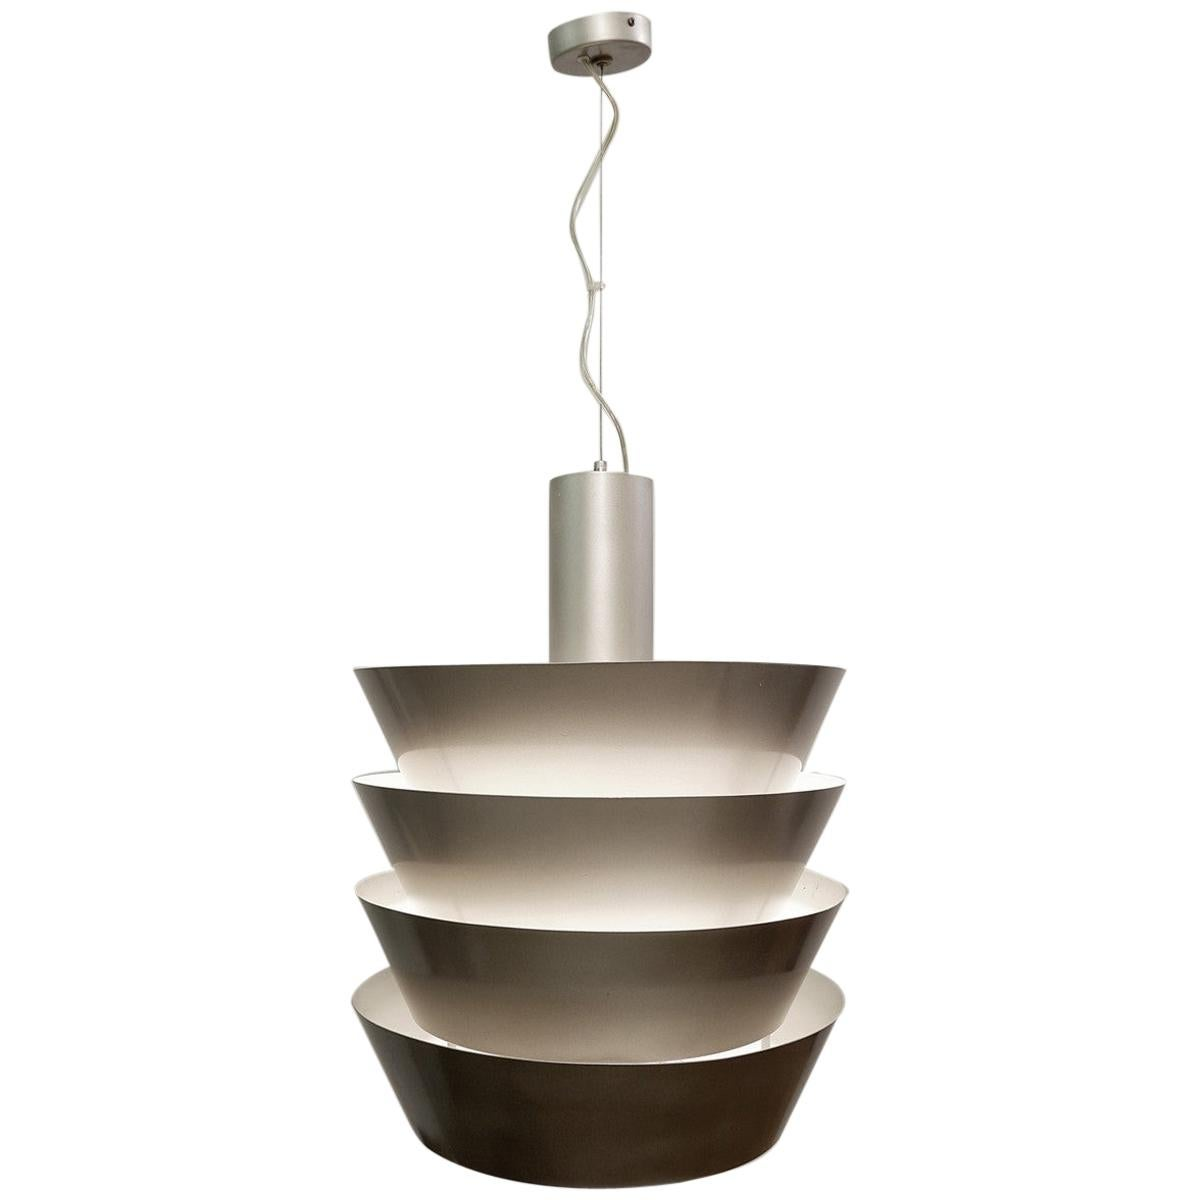 Italian Pendant Light in Silver Metal, 1960s